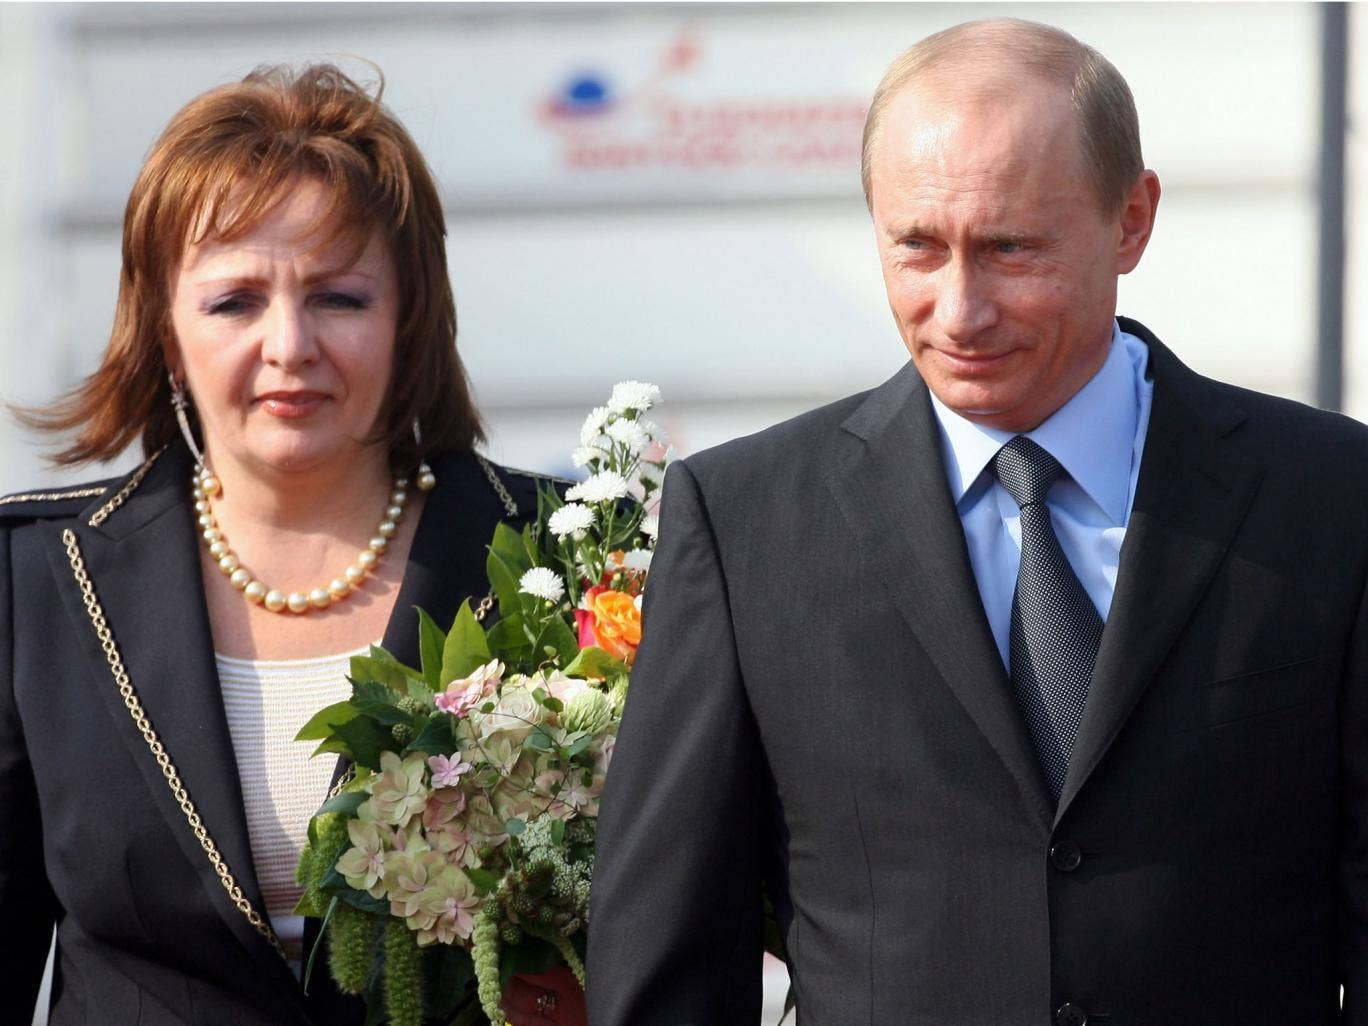 The Kremlin announced today that the divorce of Russian President Vladimir Putin and his wife Lyudmila Putina was finalised today